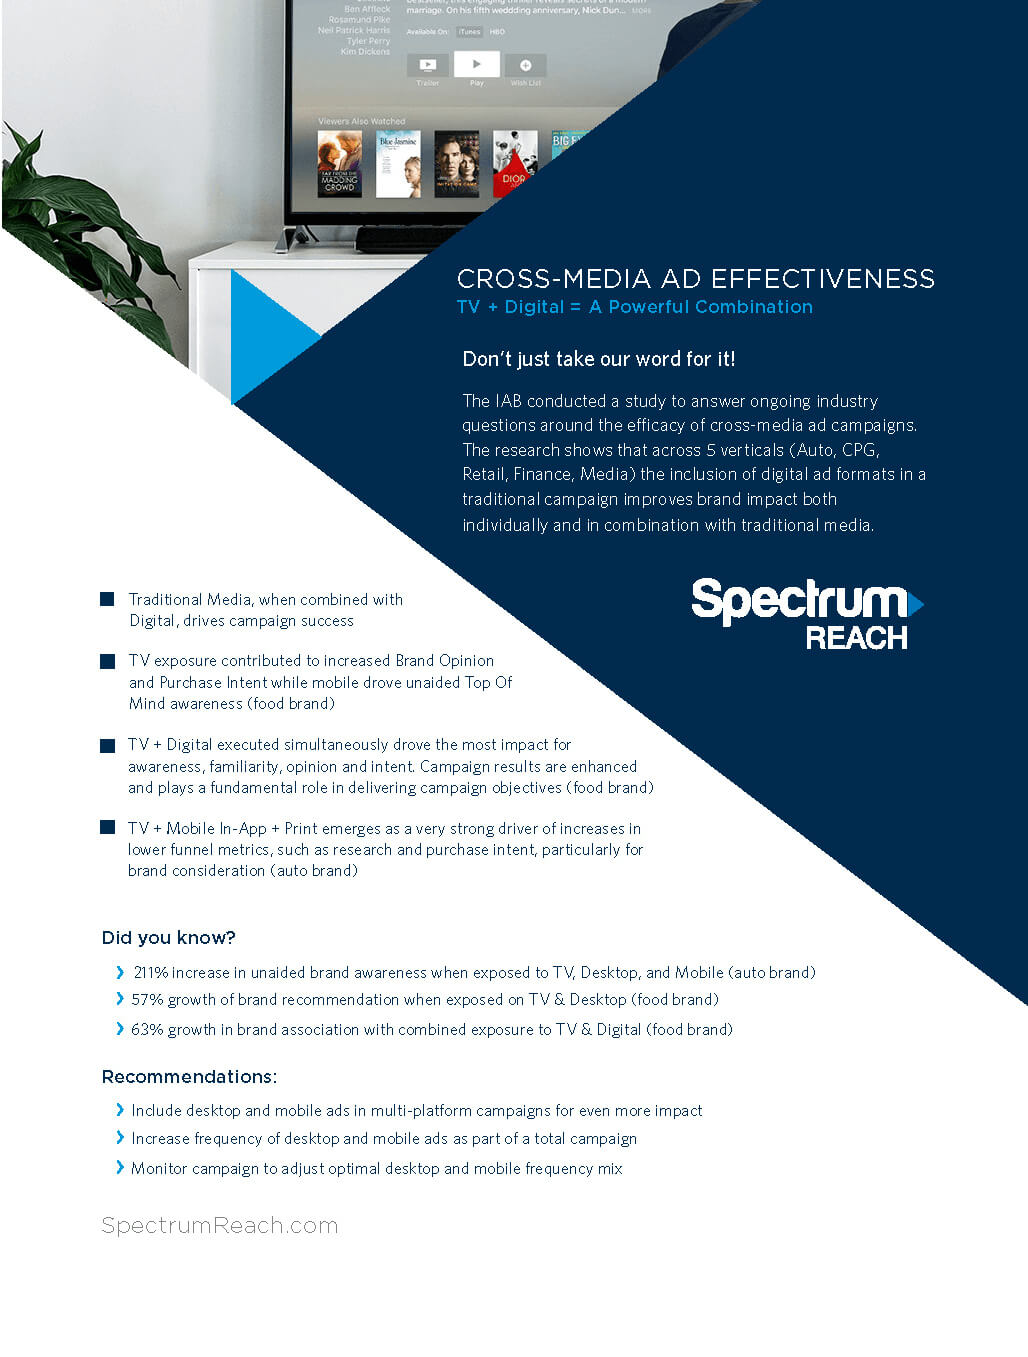 Spectrum Reach Ad Layout and Design by Consort Creative